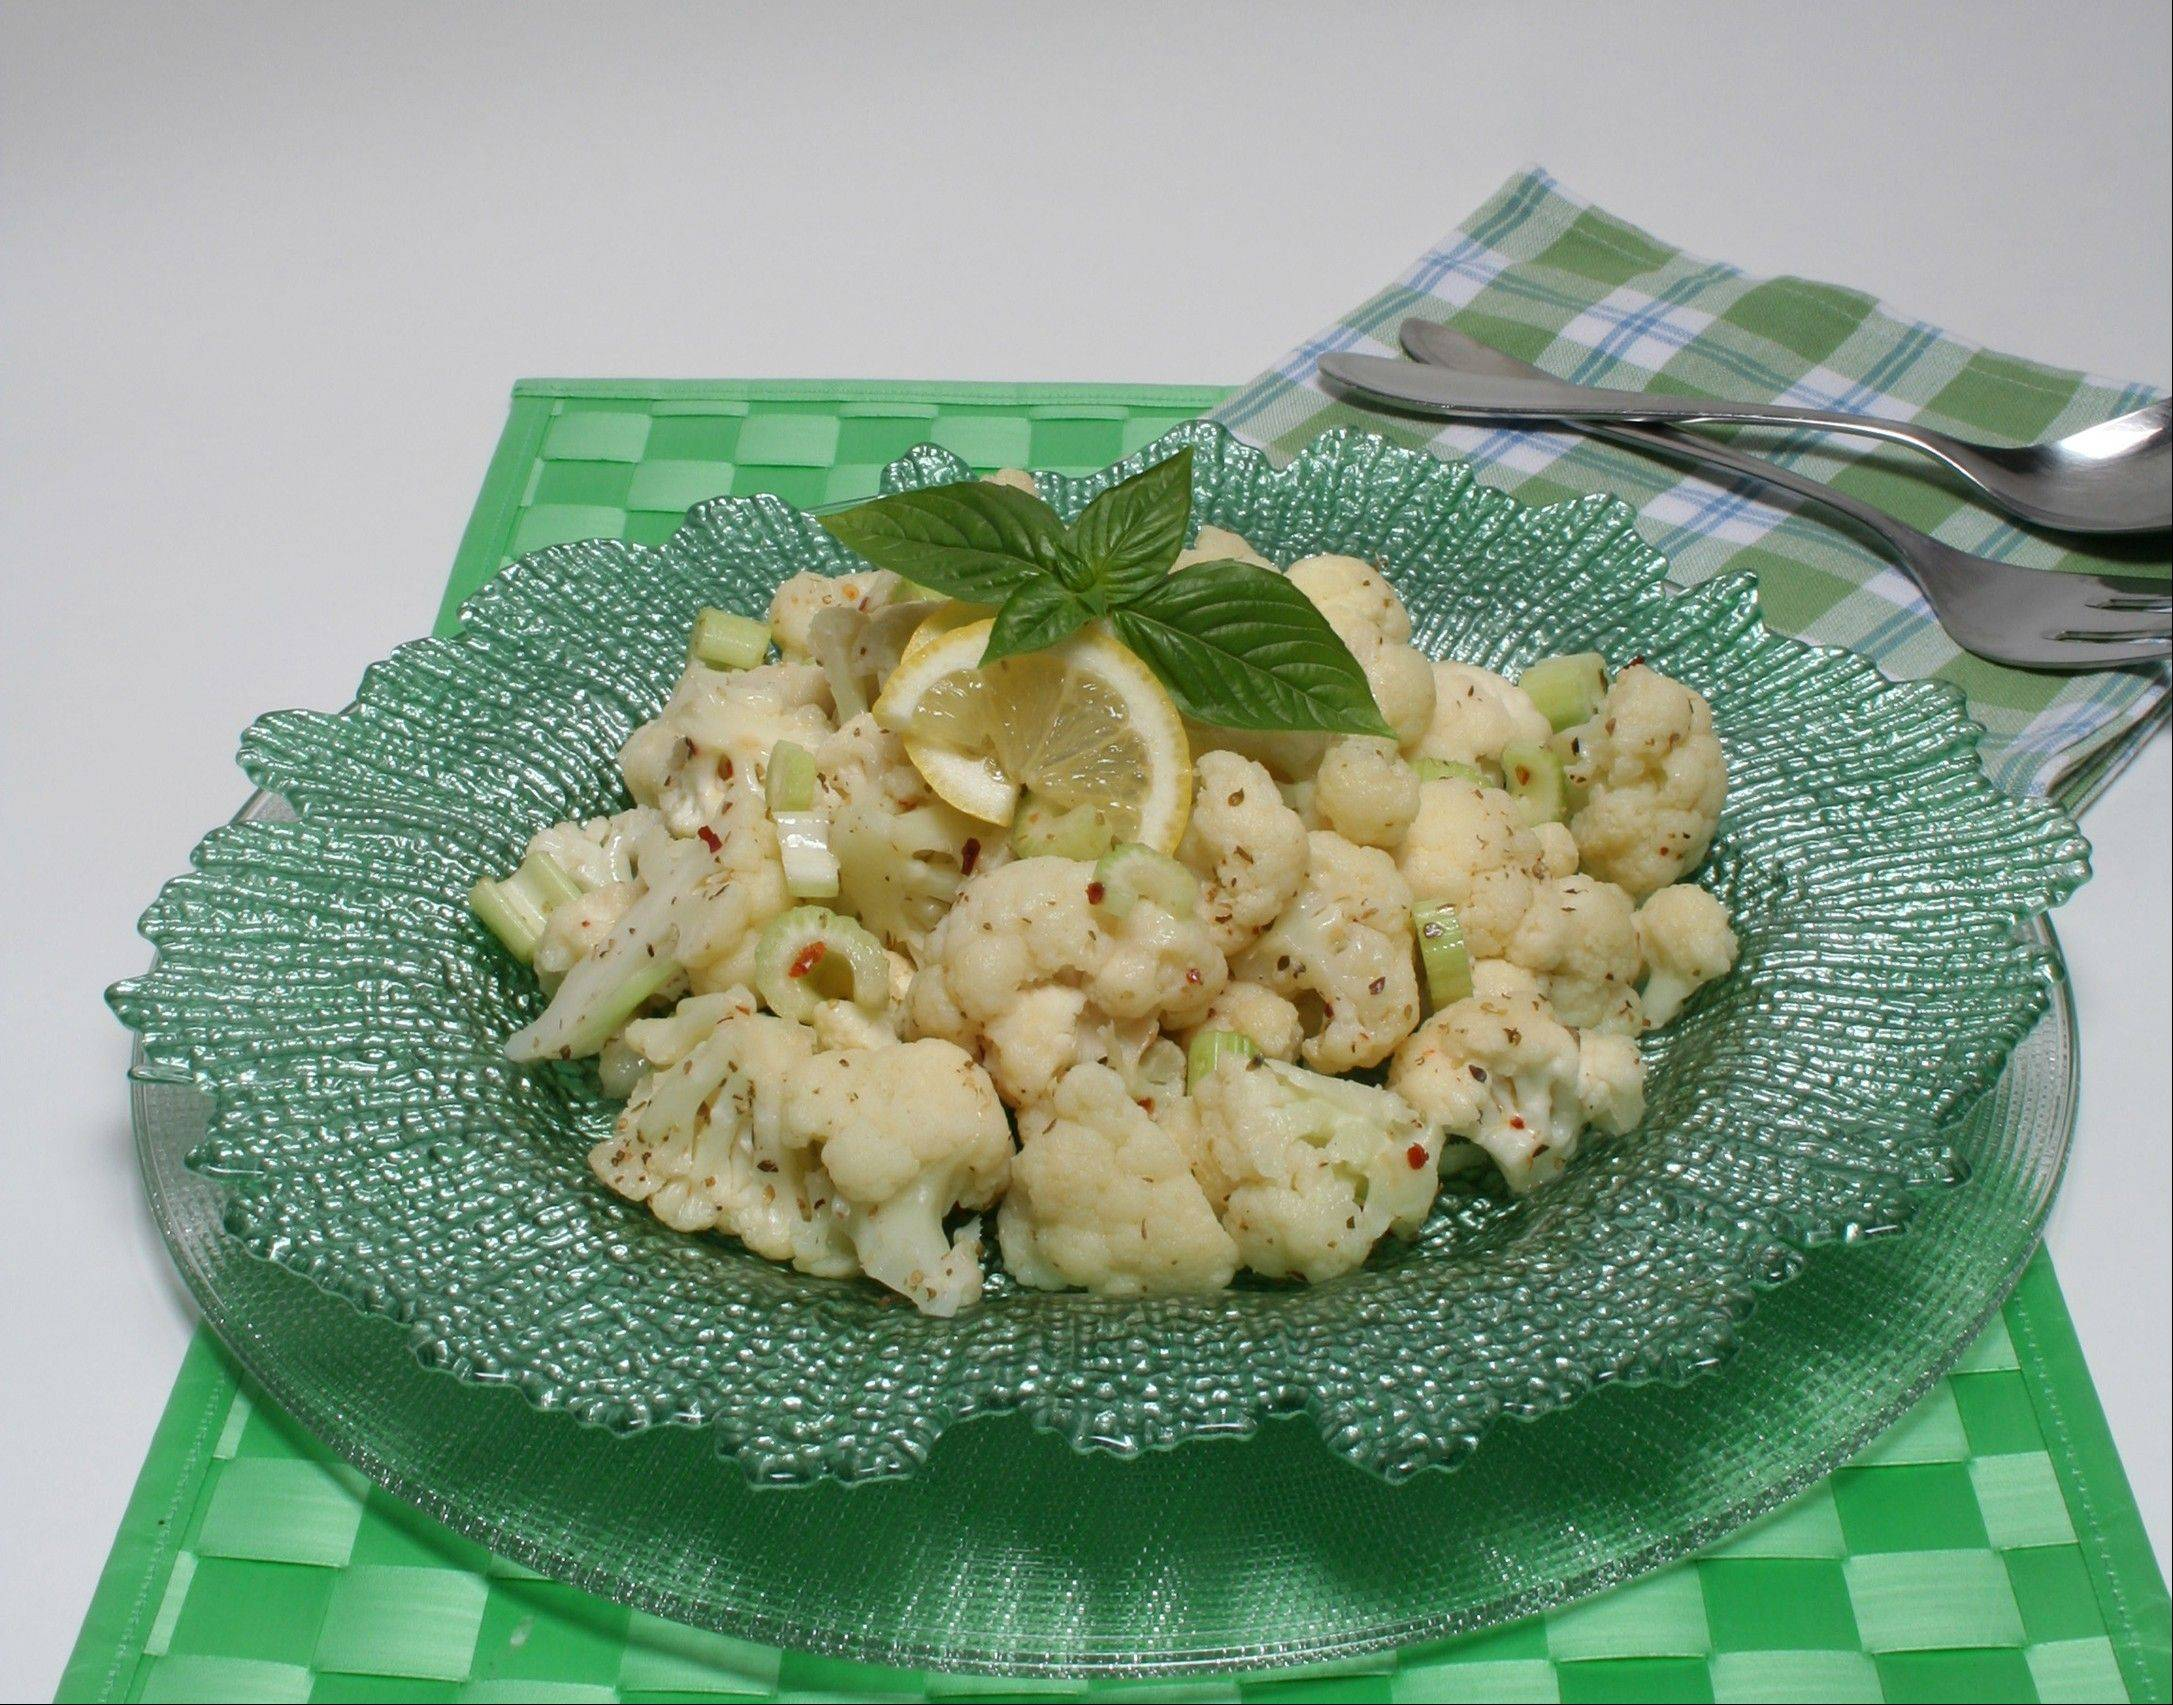 For a cool summer side dish, try this chilled cauliflower salad.